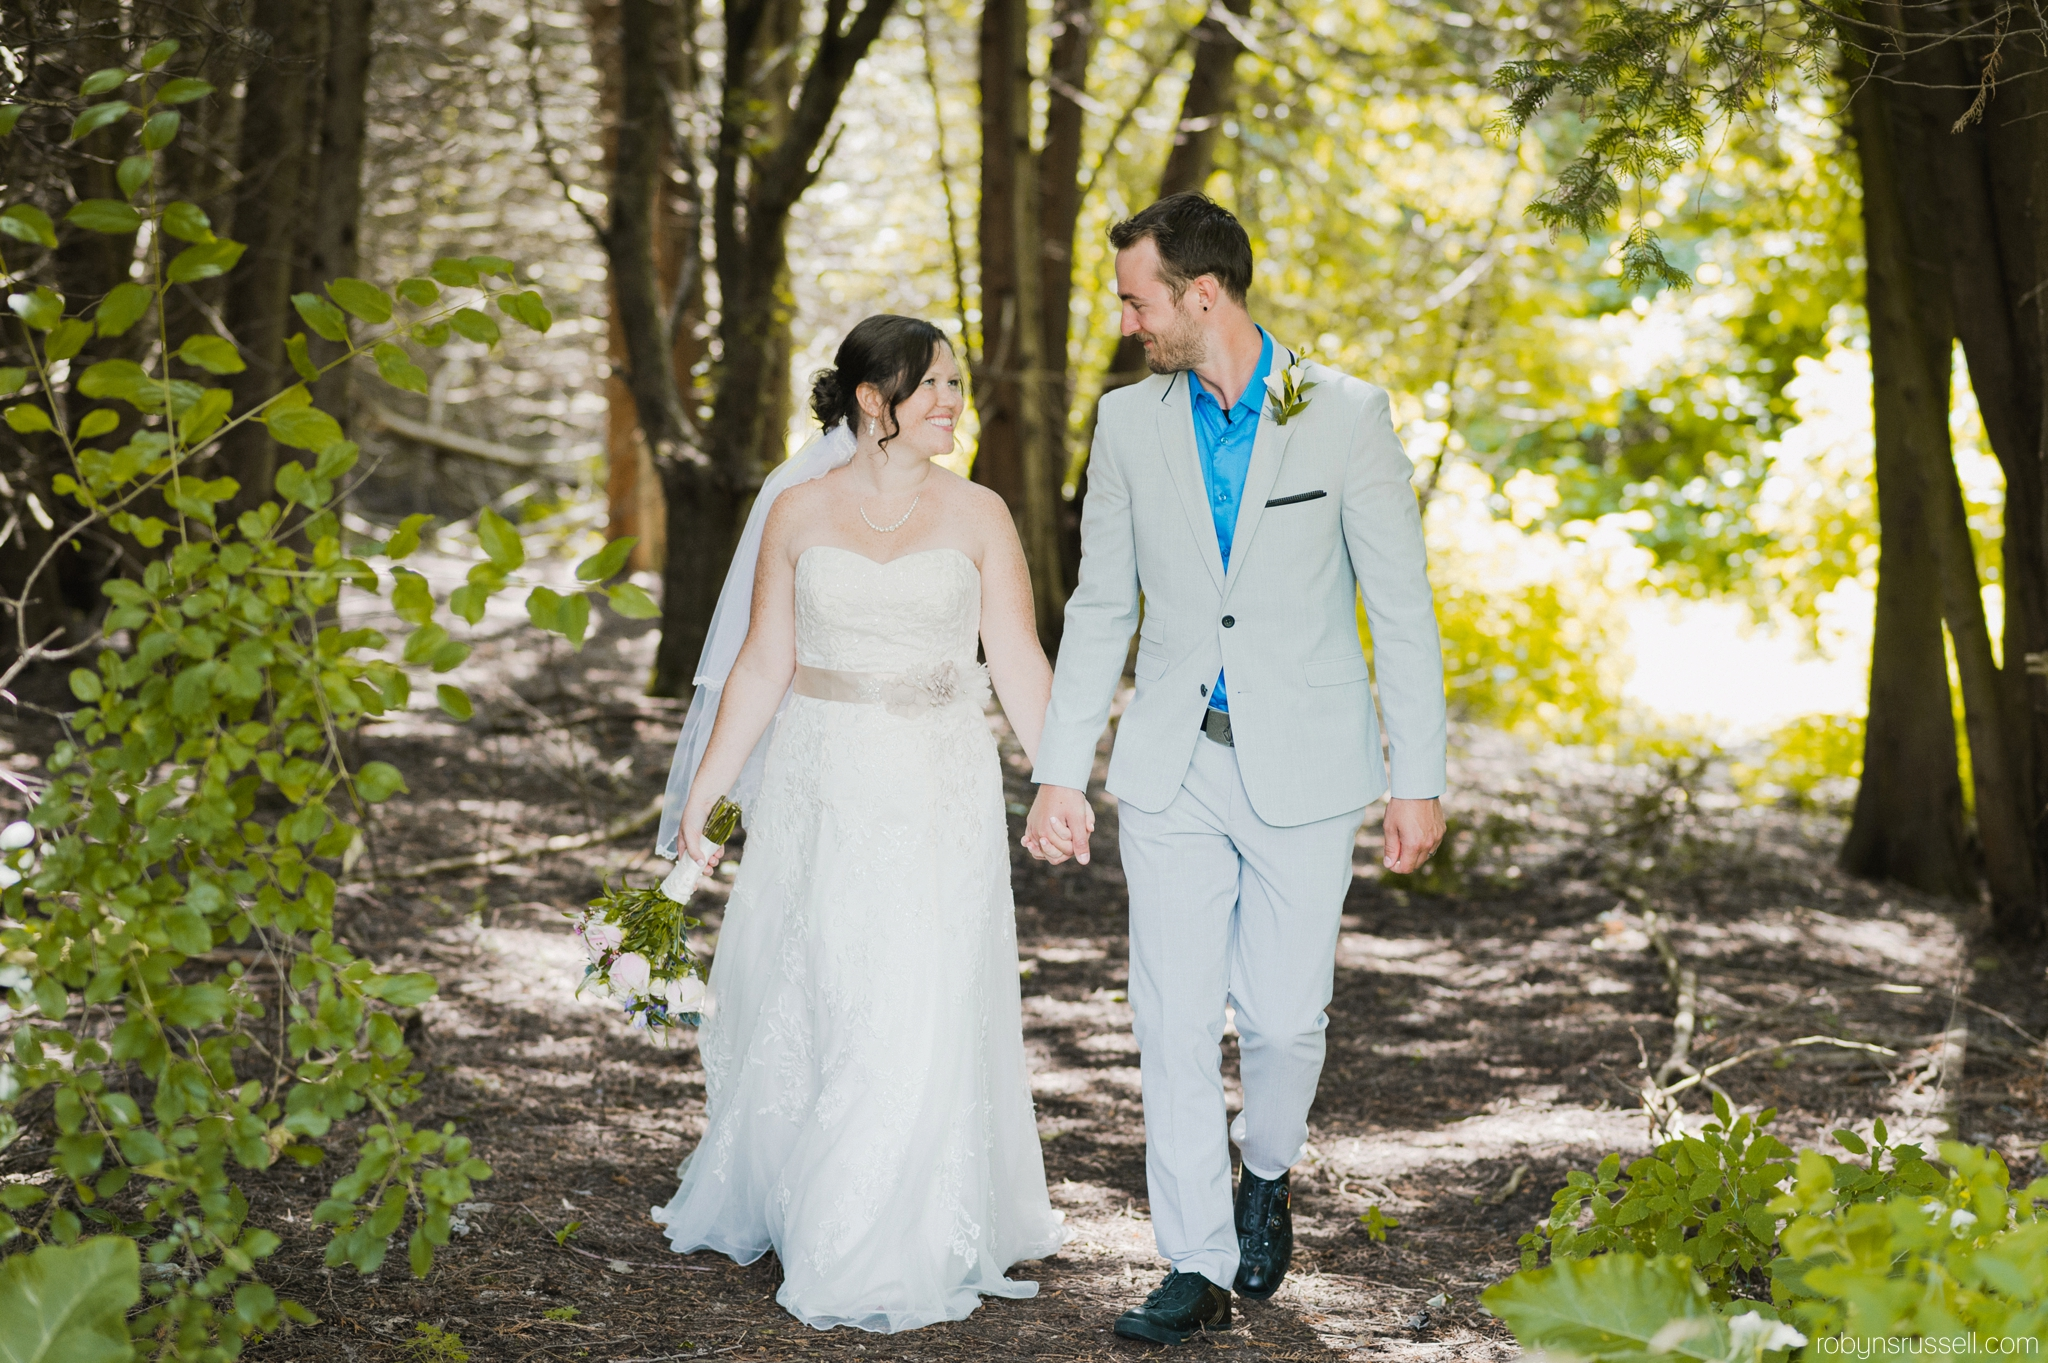 34-bride-and-groom-walking-from-forest.jpg